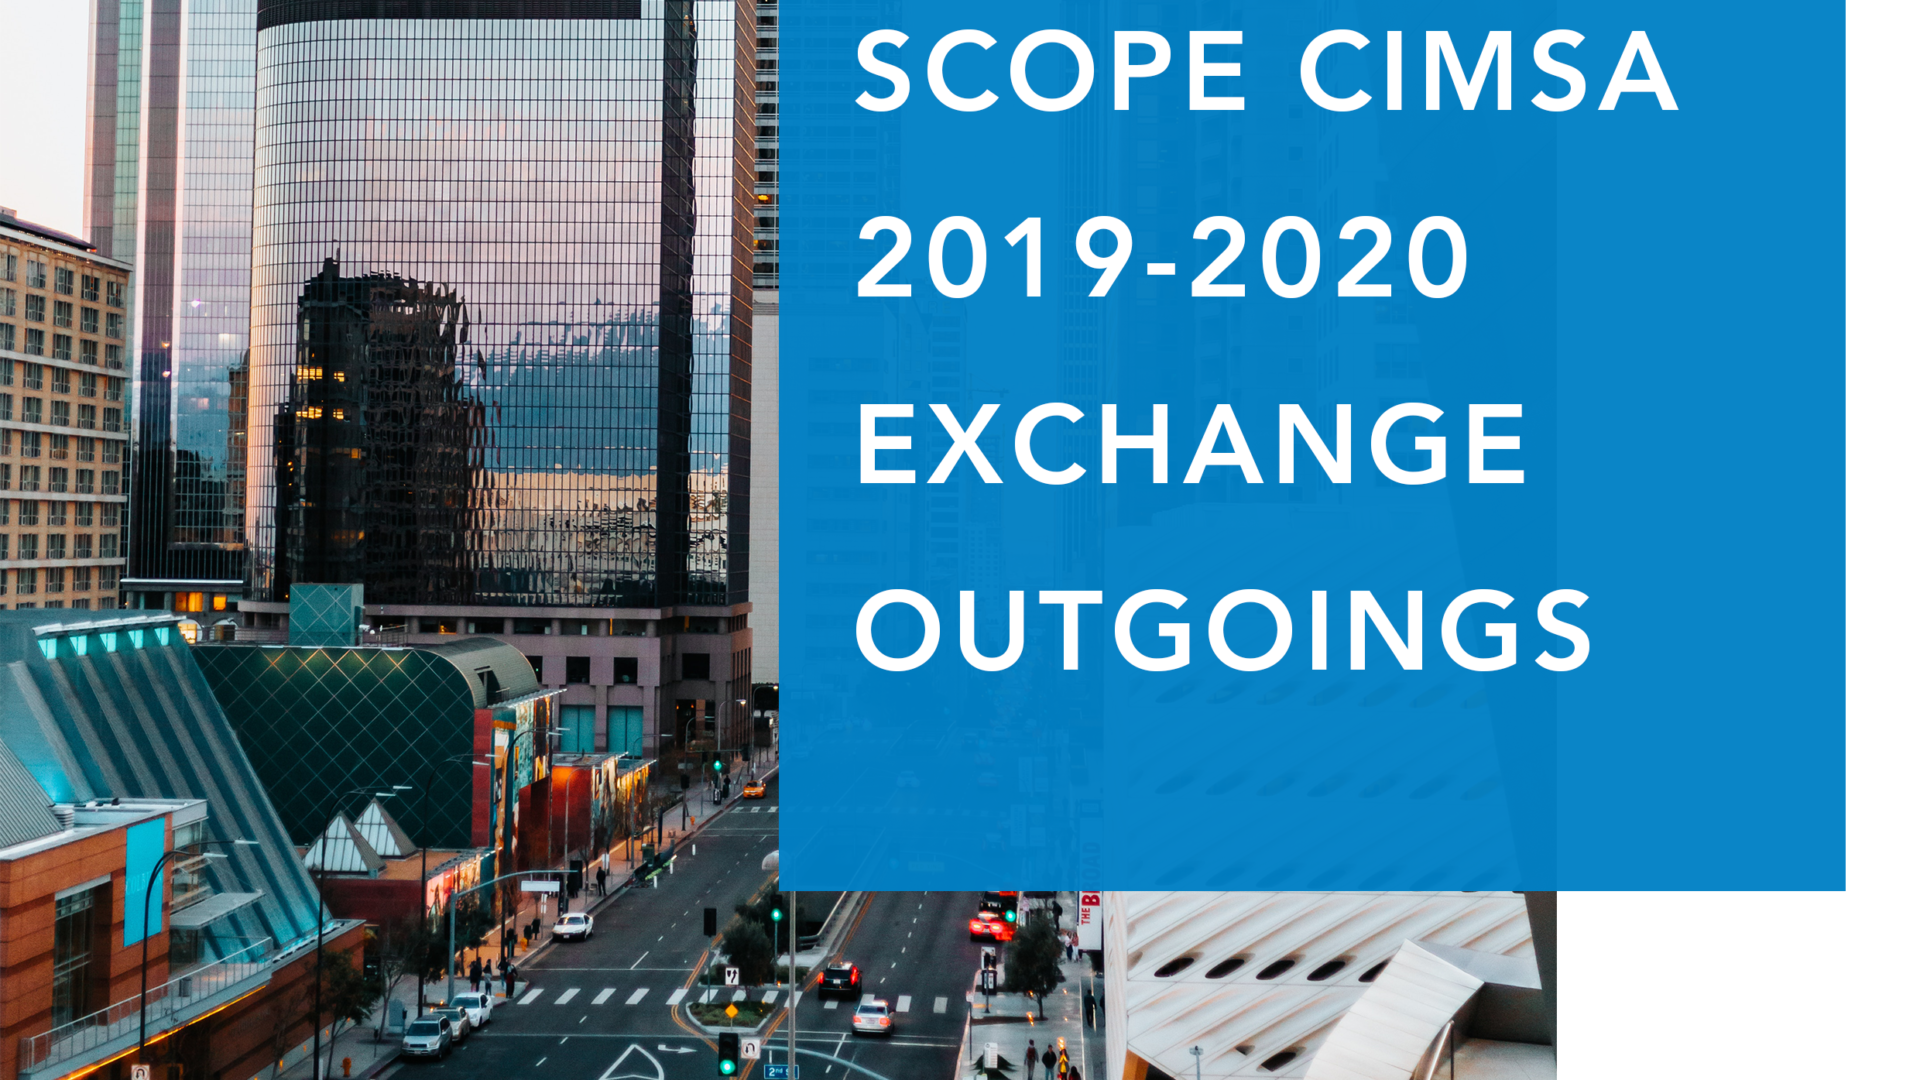 SCOPE CIMSA 2019/2020 Exchange Outgoings